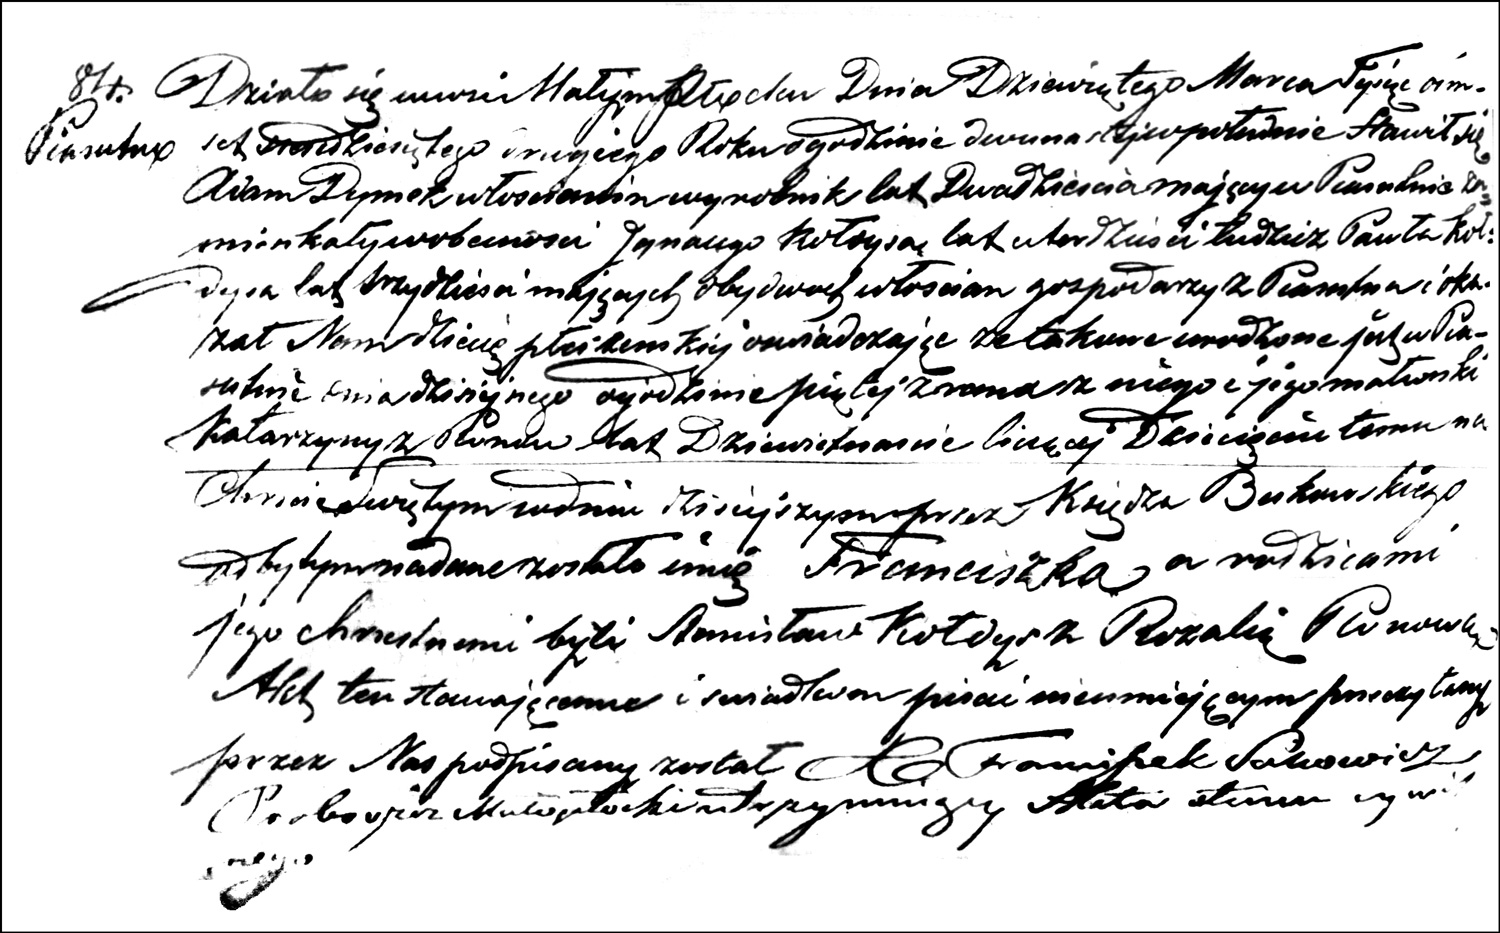 The Birth and Baptismal Record of Franciszka Dymek – 1862